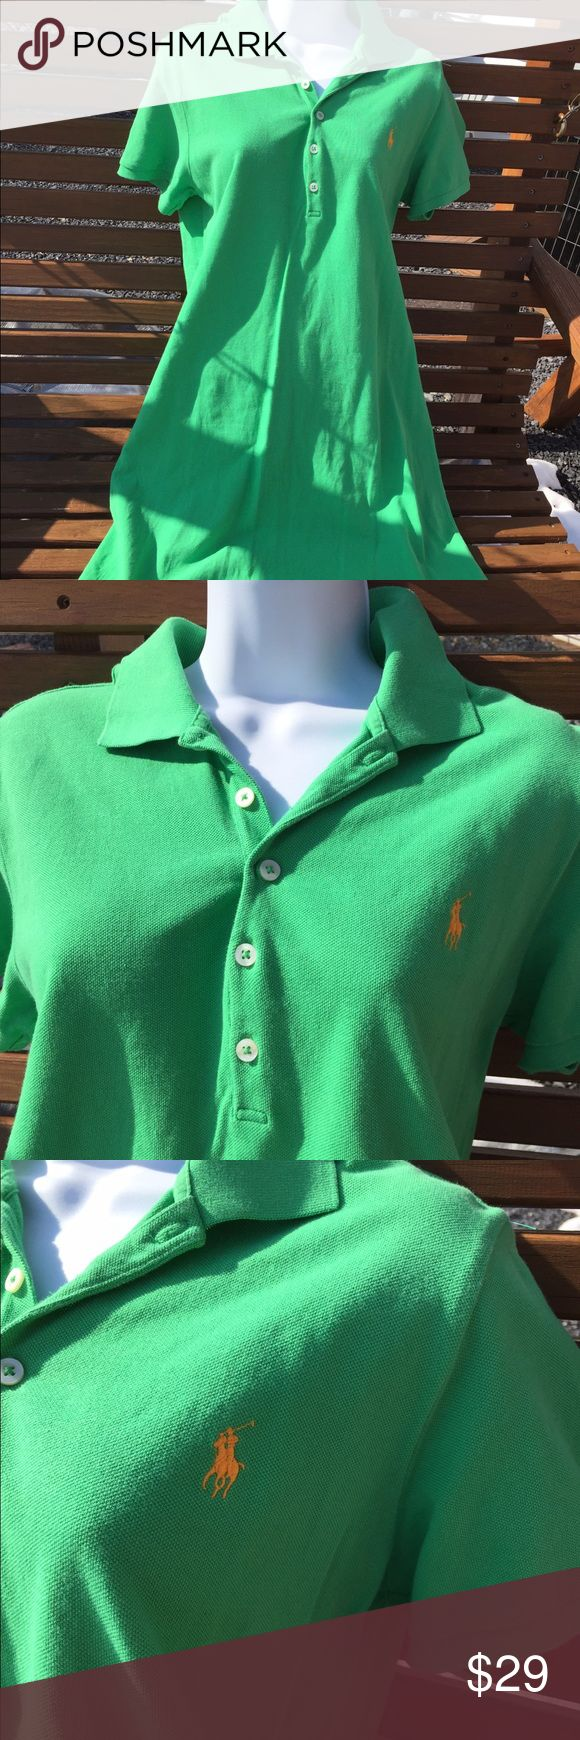 """Ralph Lauren Sport Polo Shirt Dress Classic Size L Size large. 100% cotton. Measures flat: shoulder to shoulder: 16"""". Pit to pit: 19"""". Bottom of the collar in the back to the bottom of Dress: 36"""". Be sure to view the other items in our closet. We offer both women's and Mens items in a variety of sizes. Bundle and save!! Thank you for viewing our item!! Ralph Lauren Sport Dresses"""